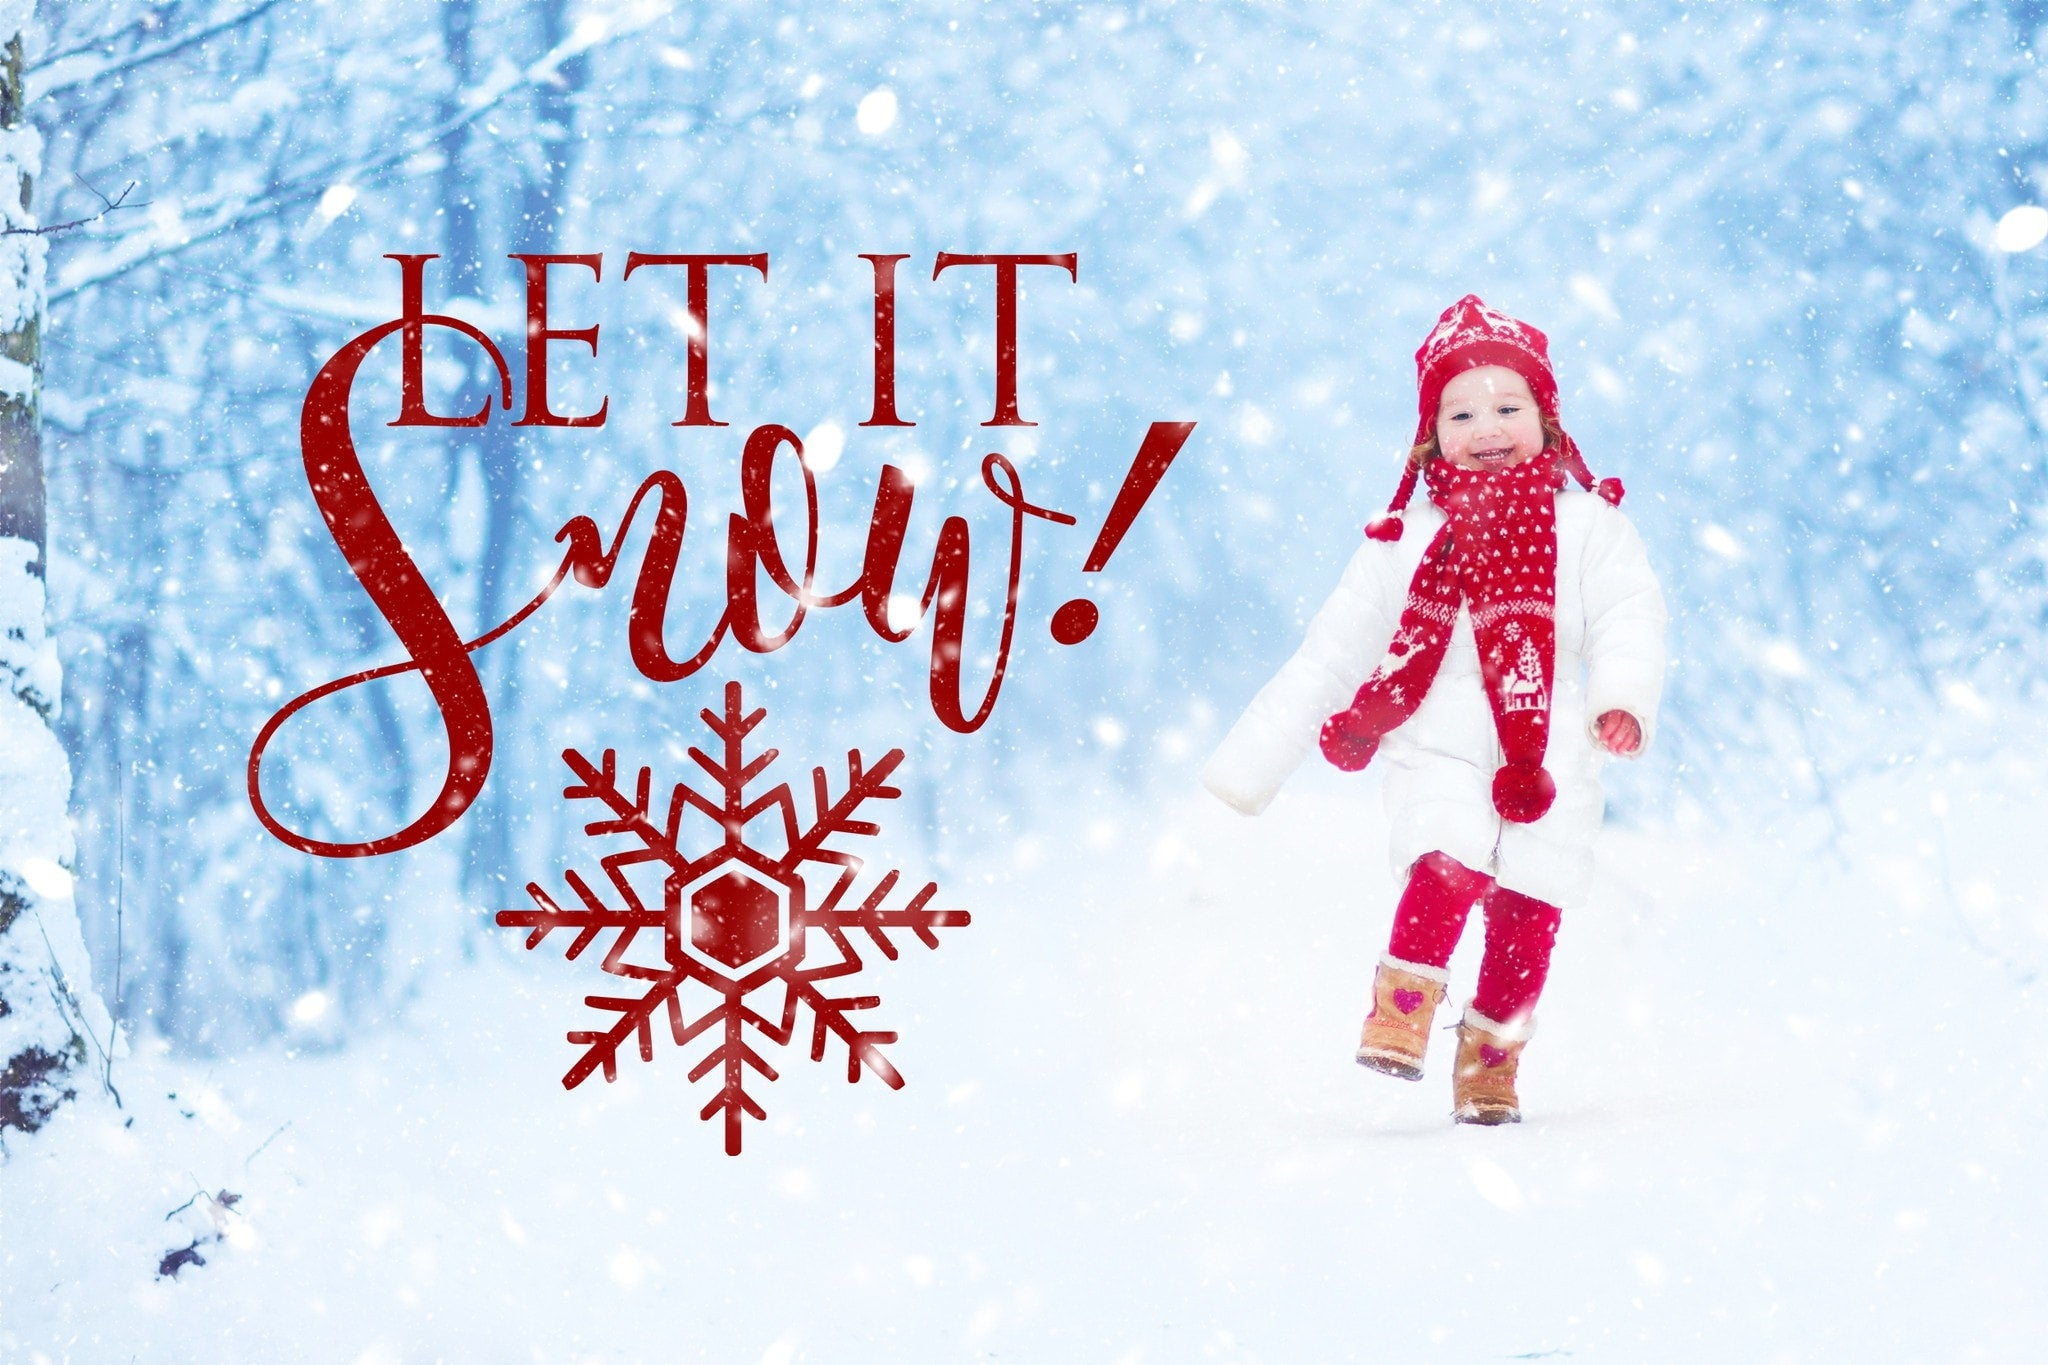 merry bright christmas overlays uplift photoshop actions photoshop overlays and lightroom presets - Christmas Overlays